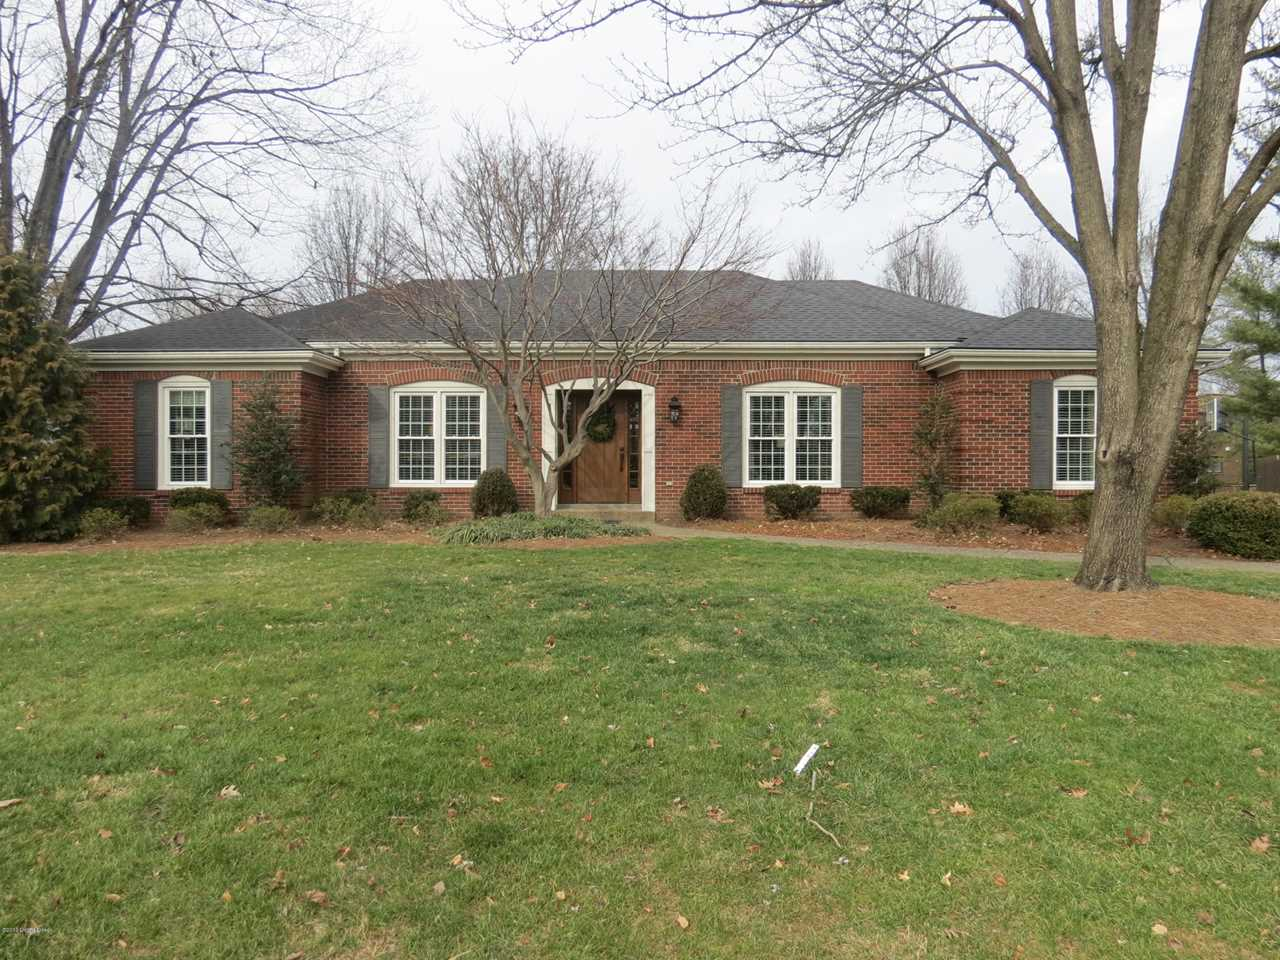 1100 Marquis Trace Louisville, KY 40223 | MLS 1522537 Photo 1